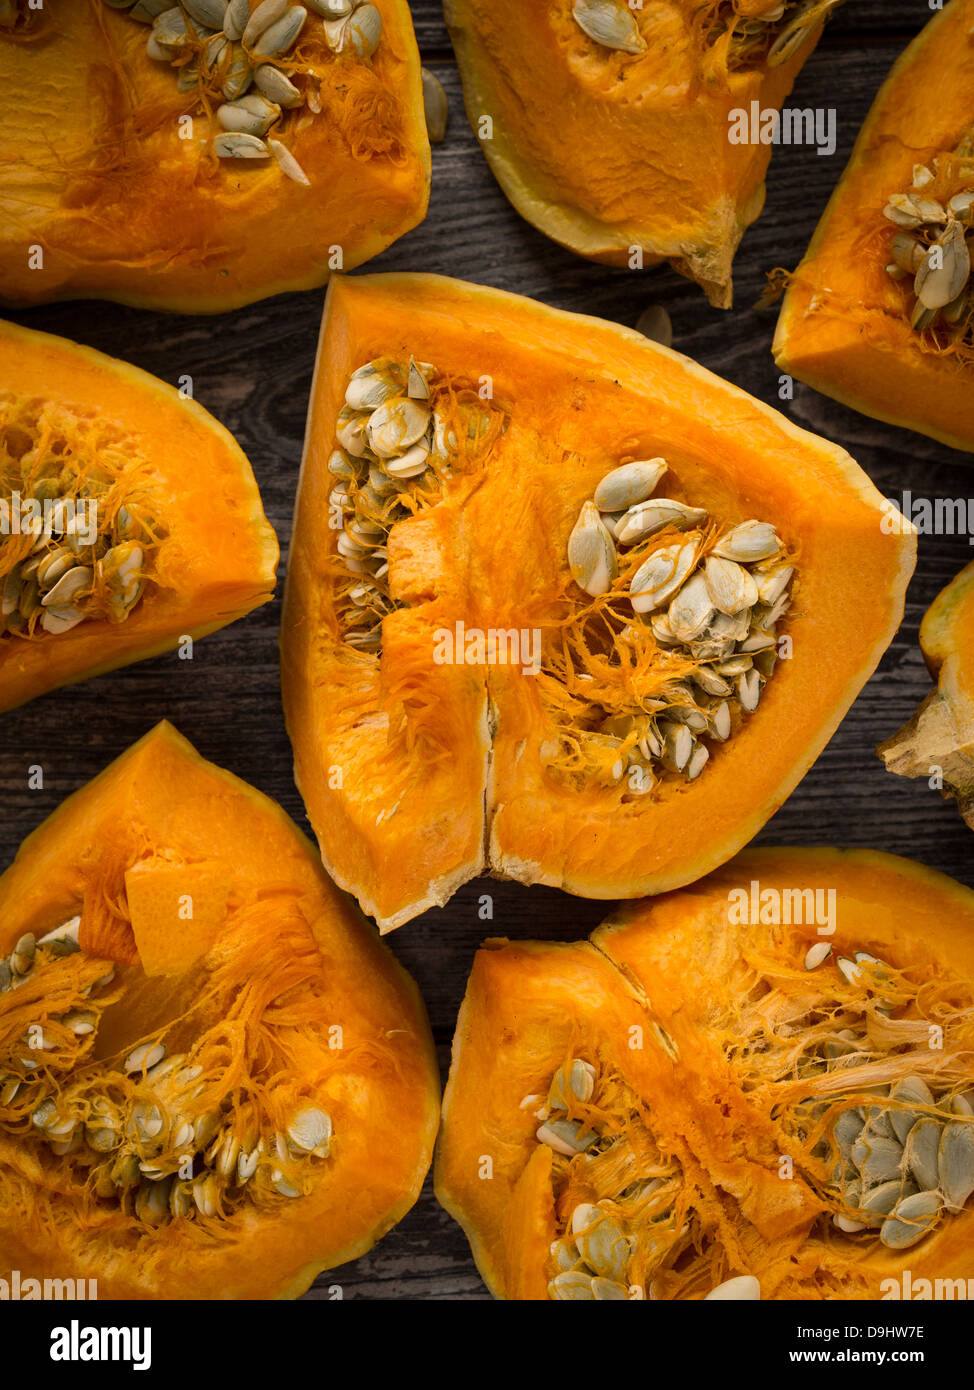 Raw pumpkin on a wooden table. - Stock Image